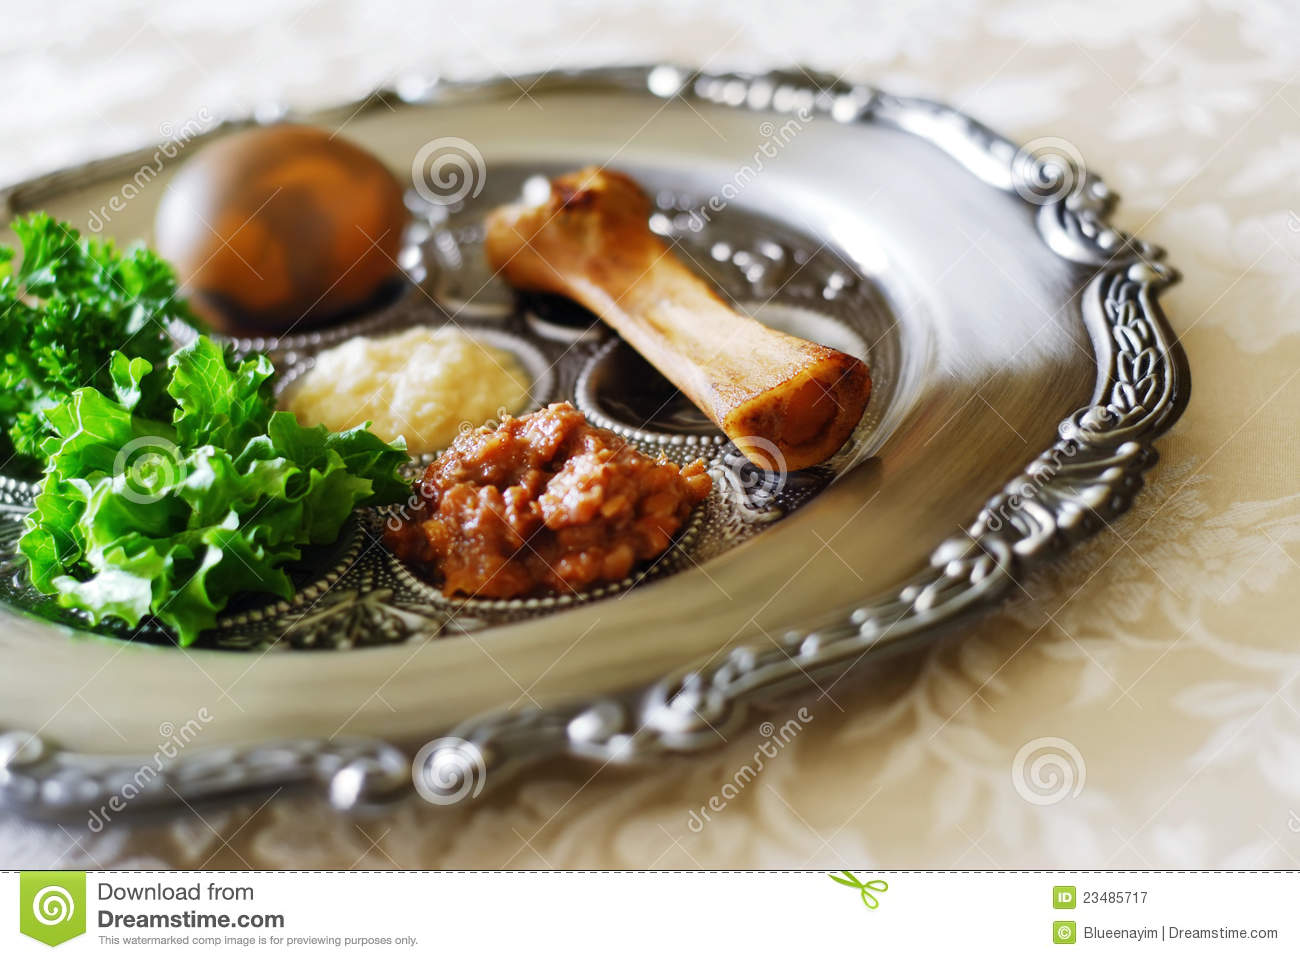 Passover Seder Plate Stock Image Image Of Cultural Maror